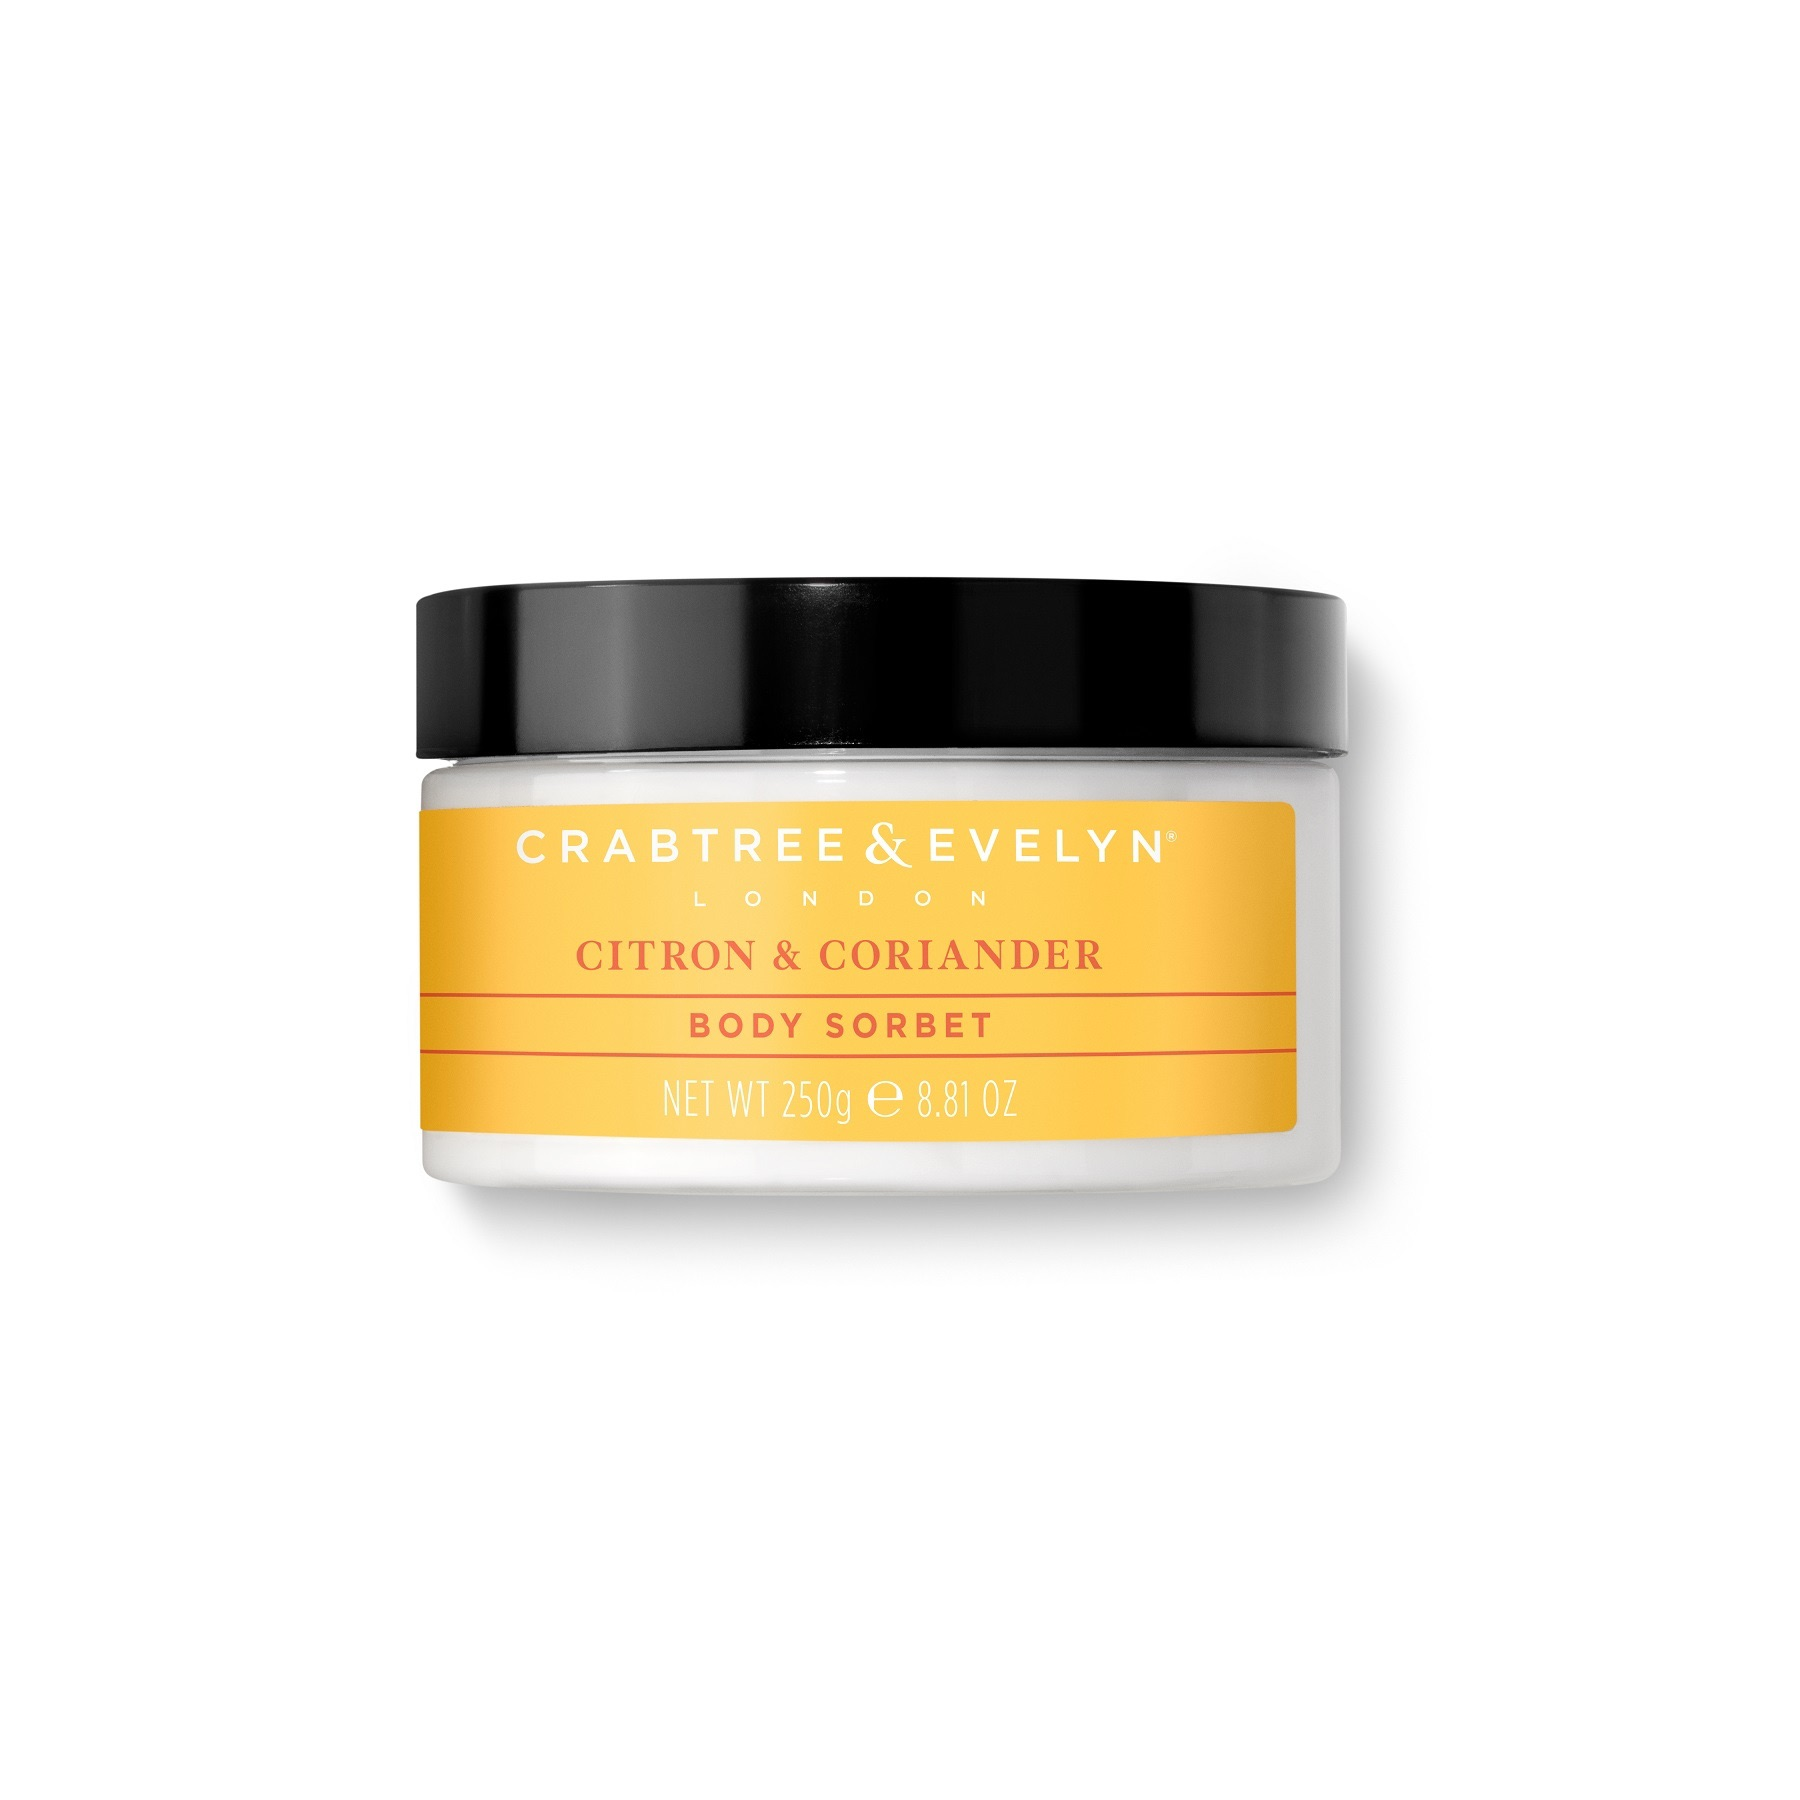 Crabtree & Evelyn Citron & Coriander Body Cooling Sorbet 250g